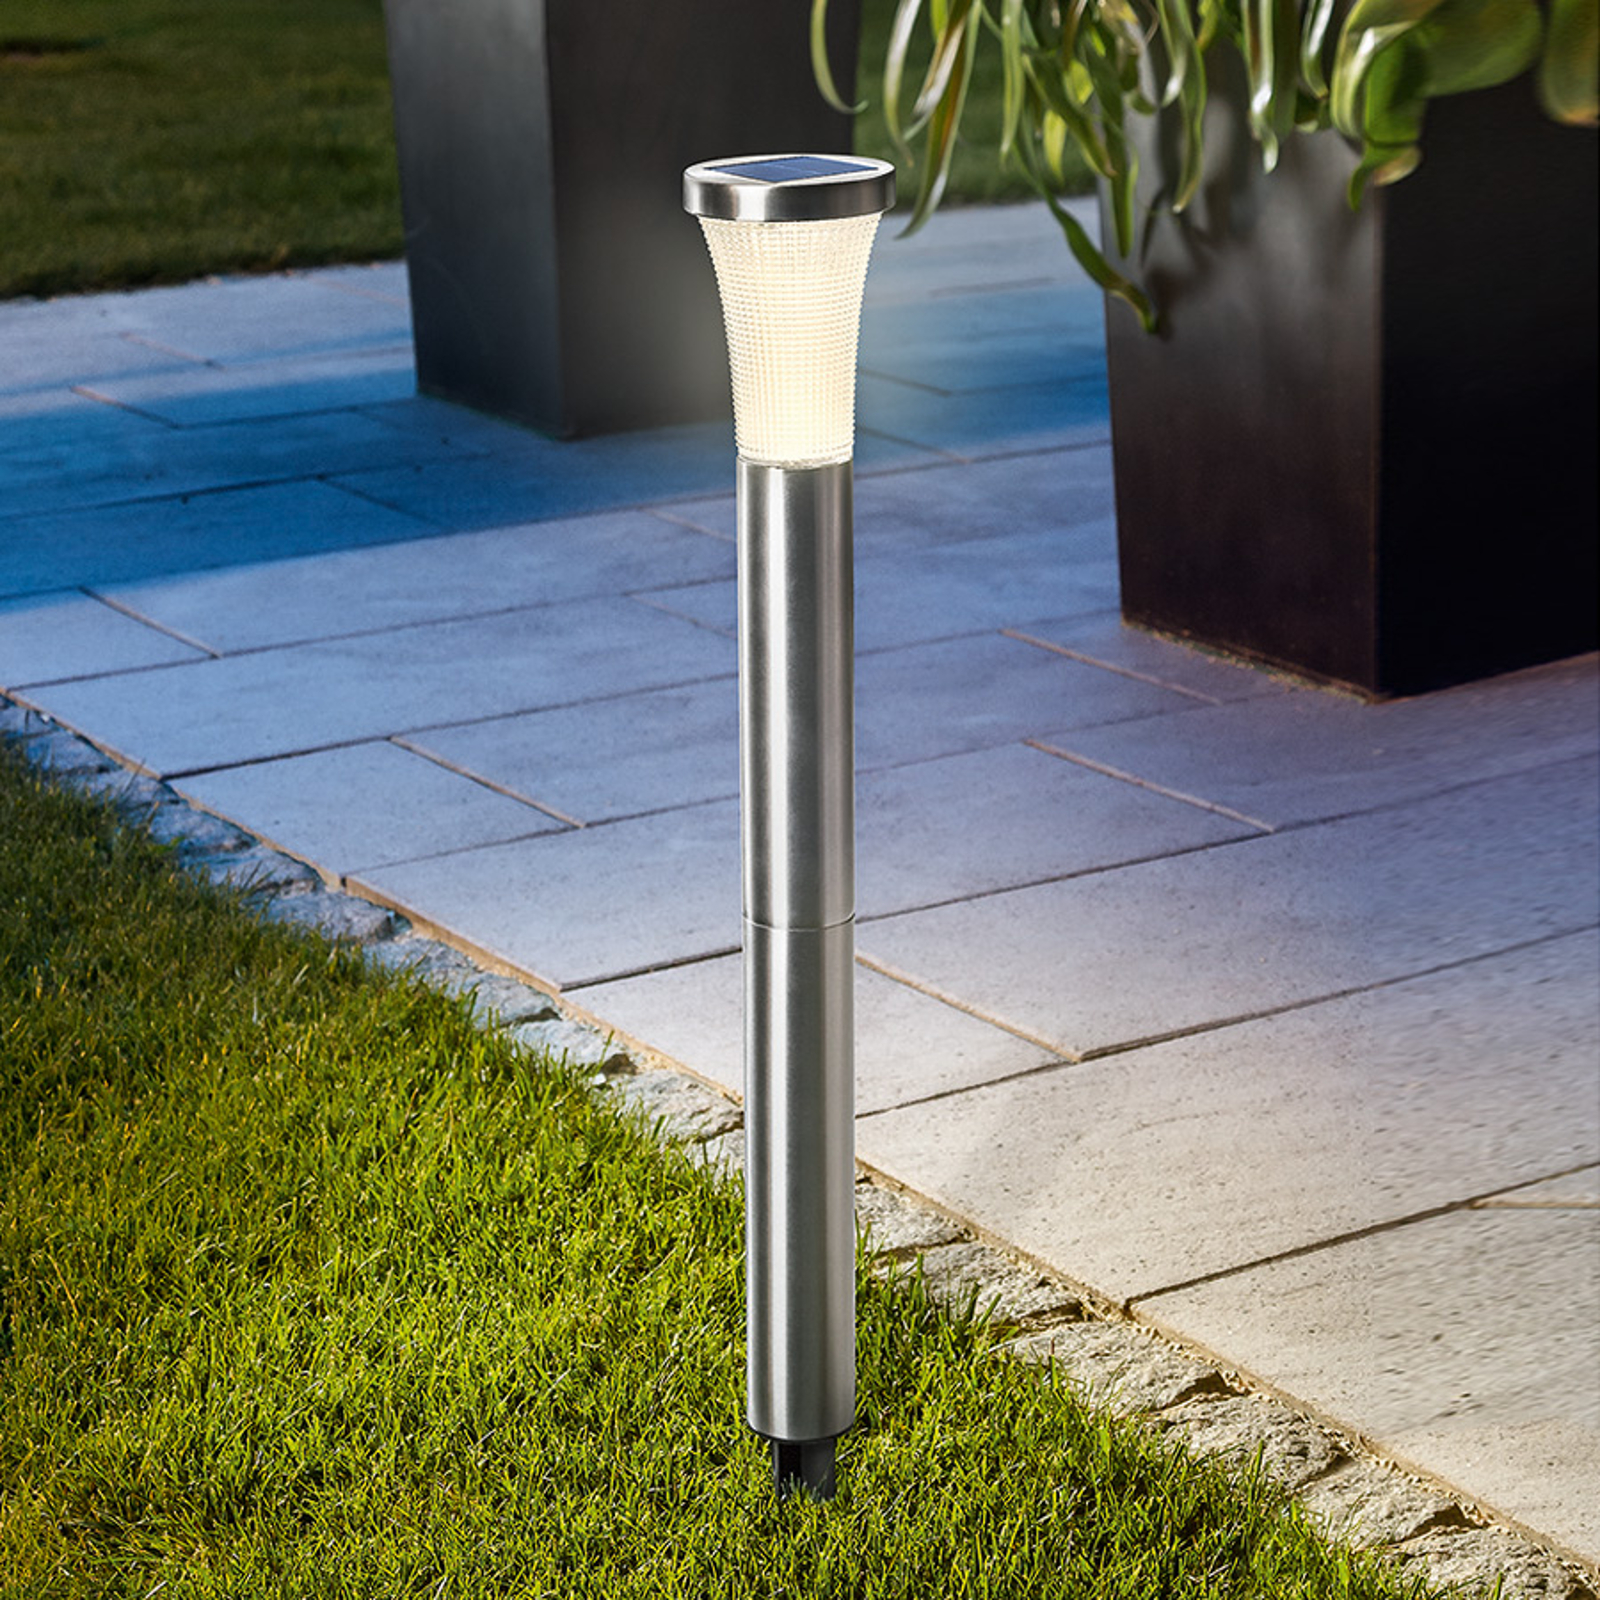 Lampa solarna LED Tower Light z grotem ziemnym